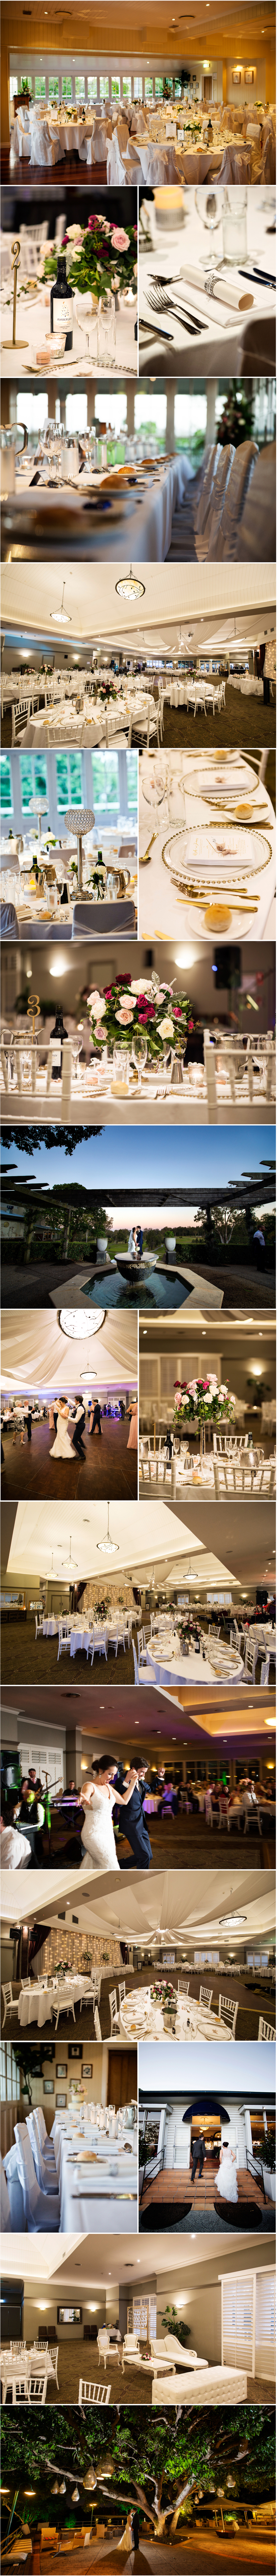 Hillstone Weddings